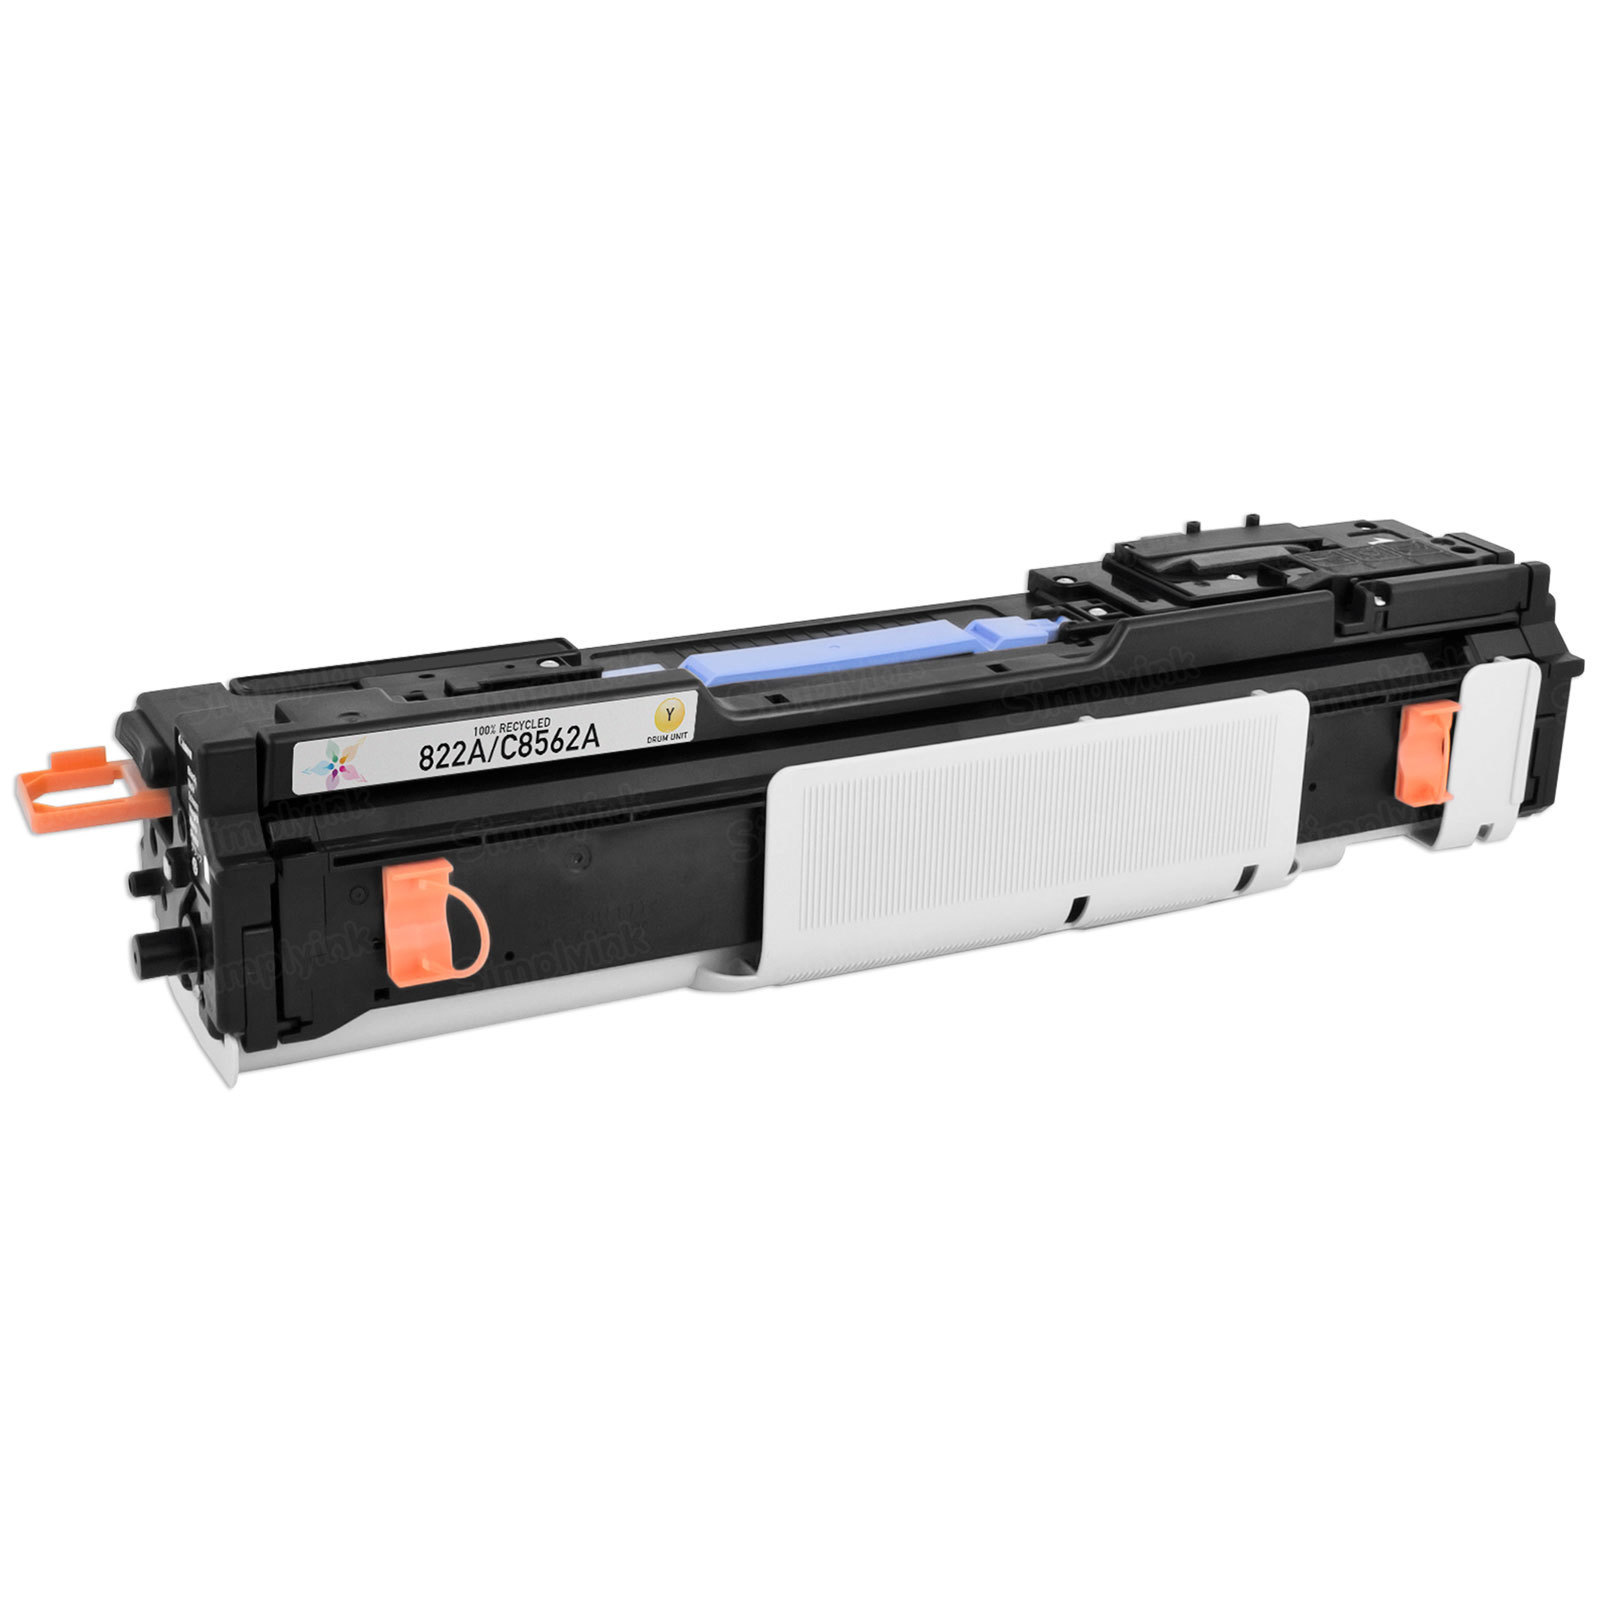 Remanufactured Replacement Yellow Laser Drum for HP 822A